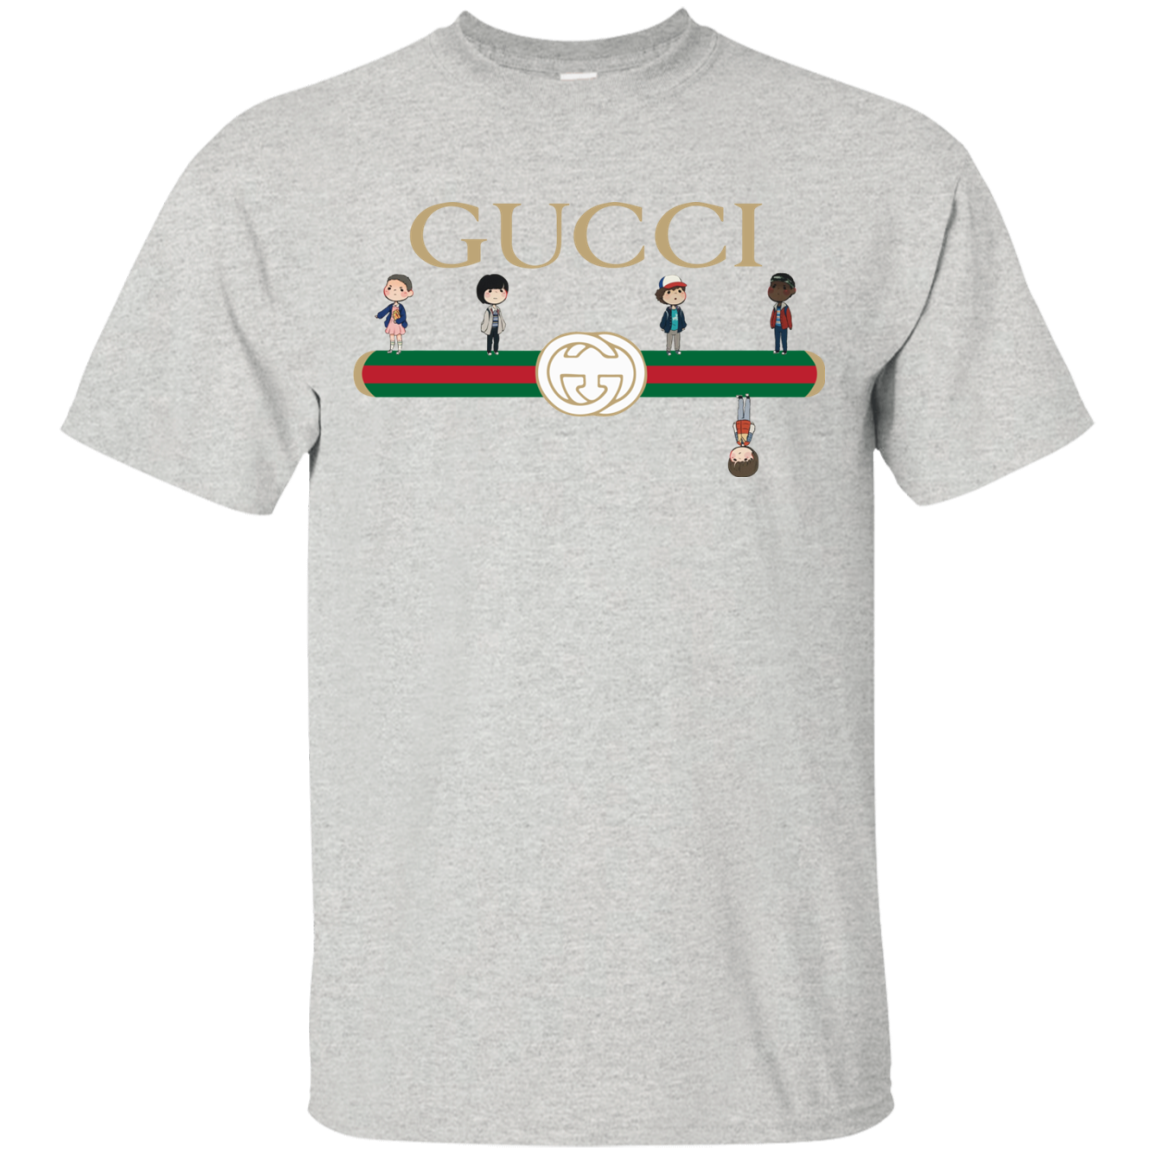 298a196cb988 Stranger Things Upside Down Gucci Shirt. Welcome to the Spring season of  Gucci Stranger Things shirt. SUPER HOT TREND for anyone loves Gucci and  Stranger ...